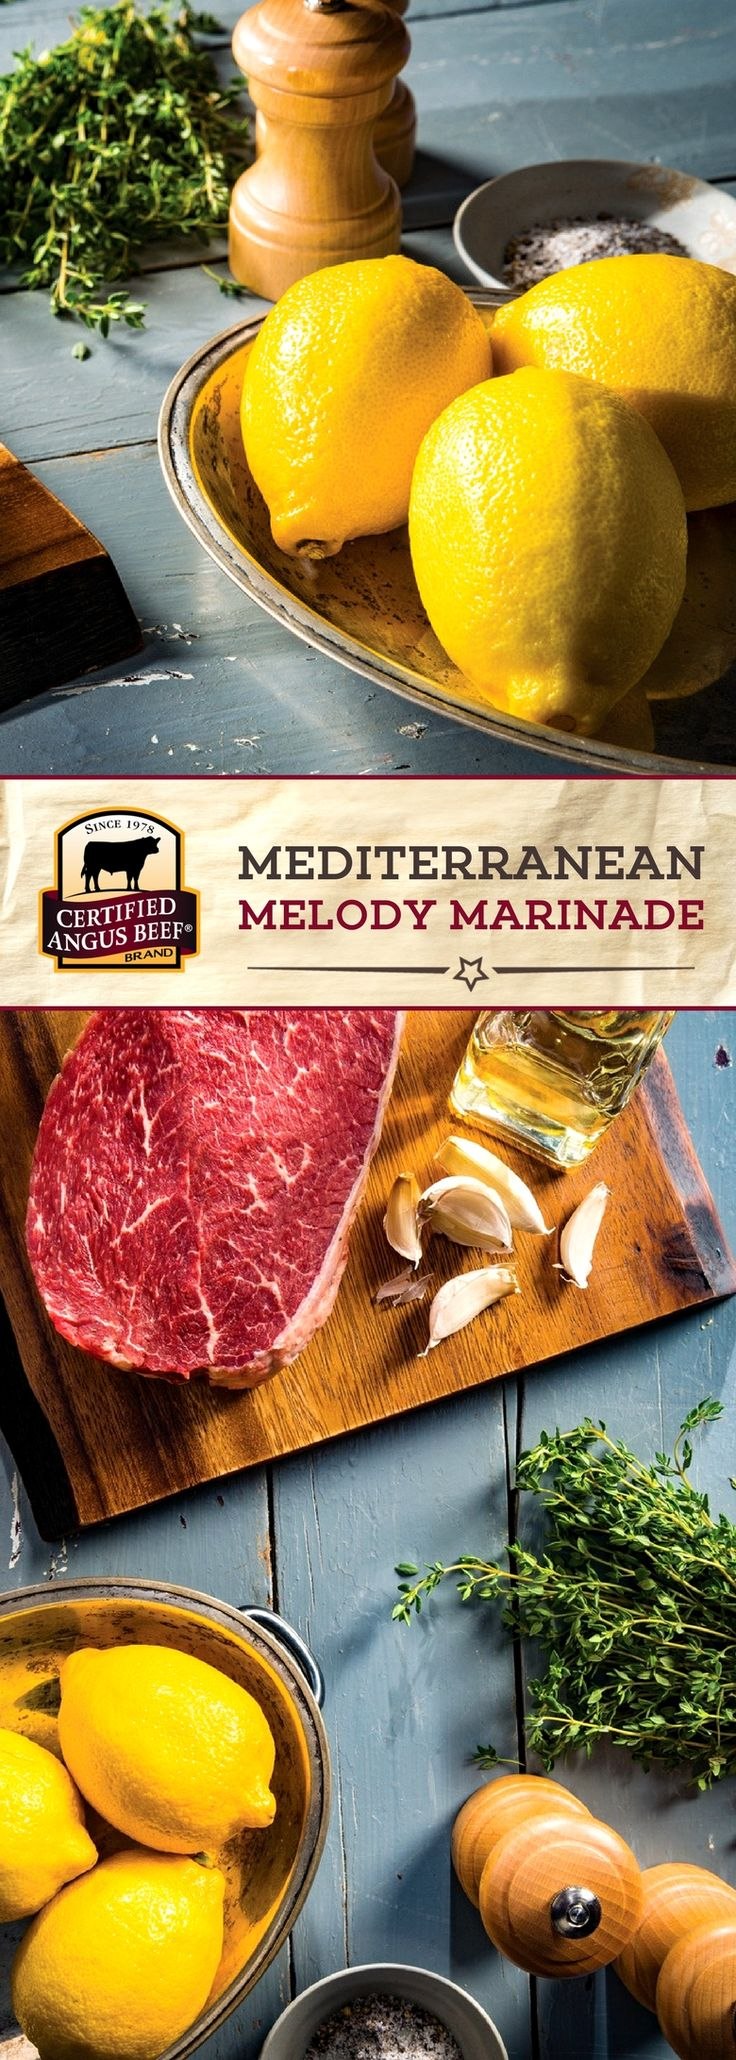 Certified Angus Beef®️️ brand Mediterranean Melody Marinade is a MUST-TRY! Combining lemon juice, olive oil, garlic and thyme, this marinade is PACKED with zesty, BOLD flavor!  #bestangusbeef #certifiedangusbeef #marinade #seasoning